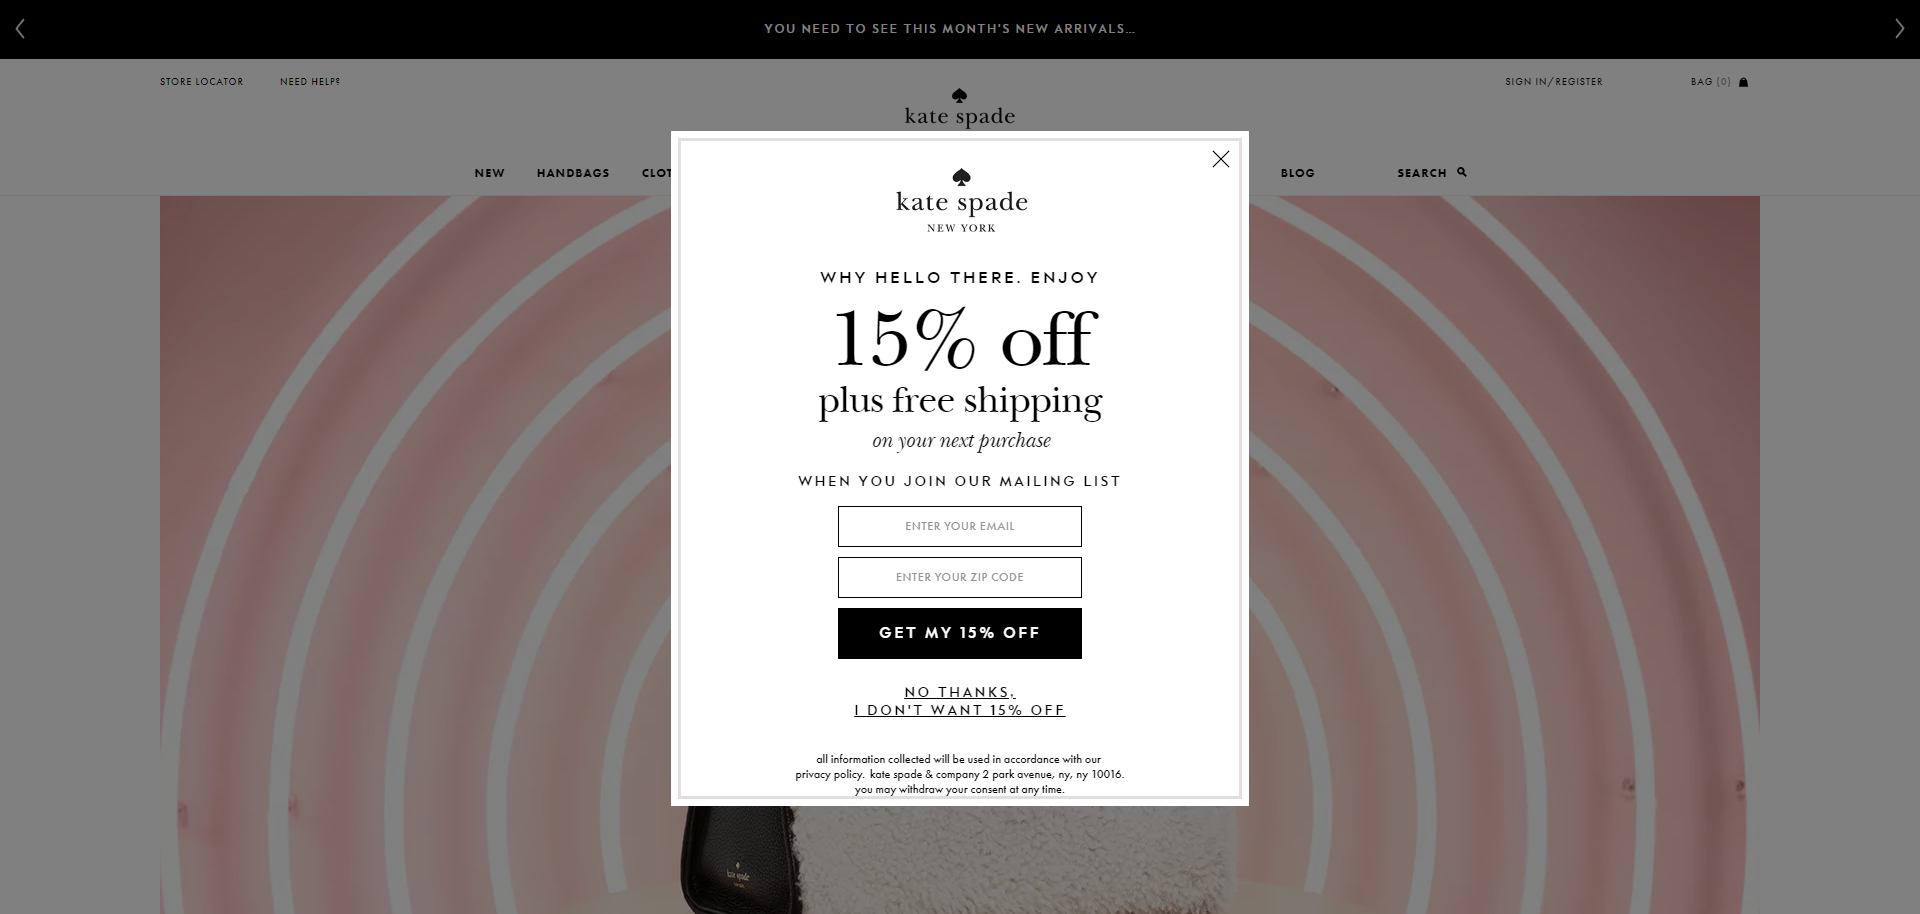 Kate Spade's email popup